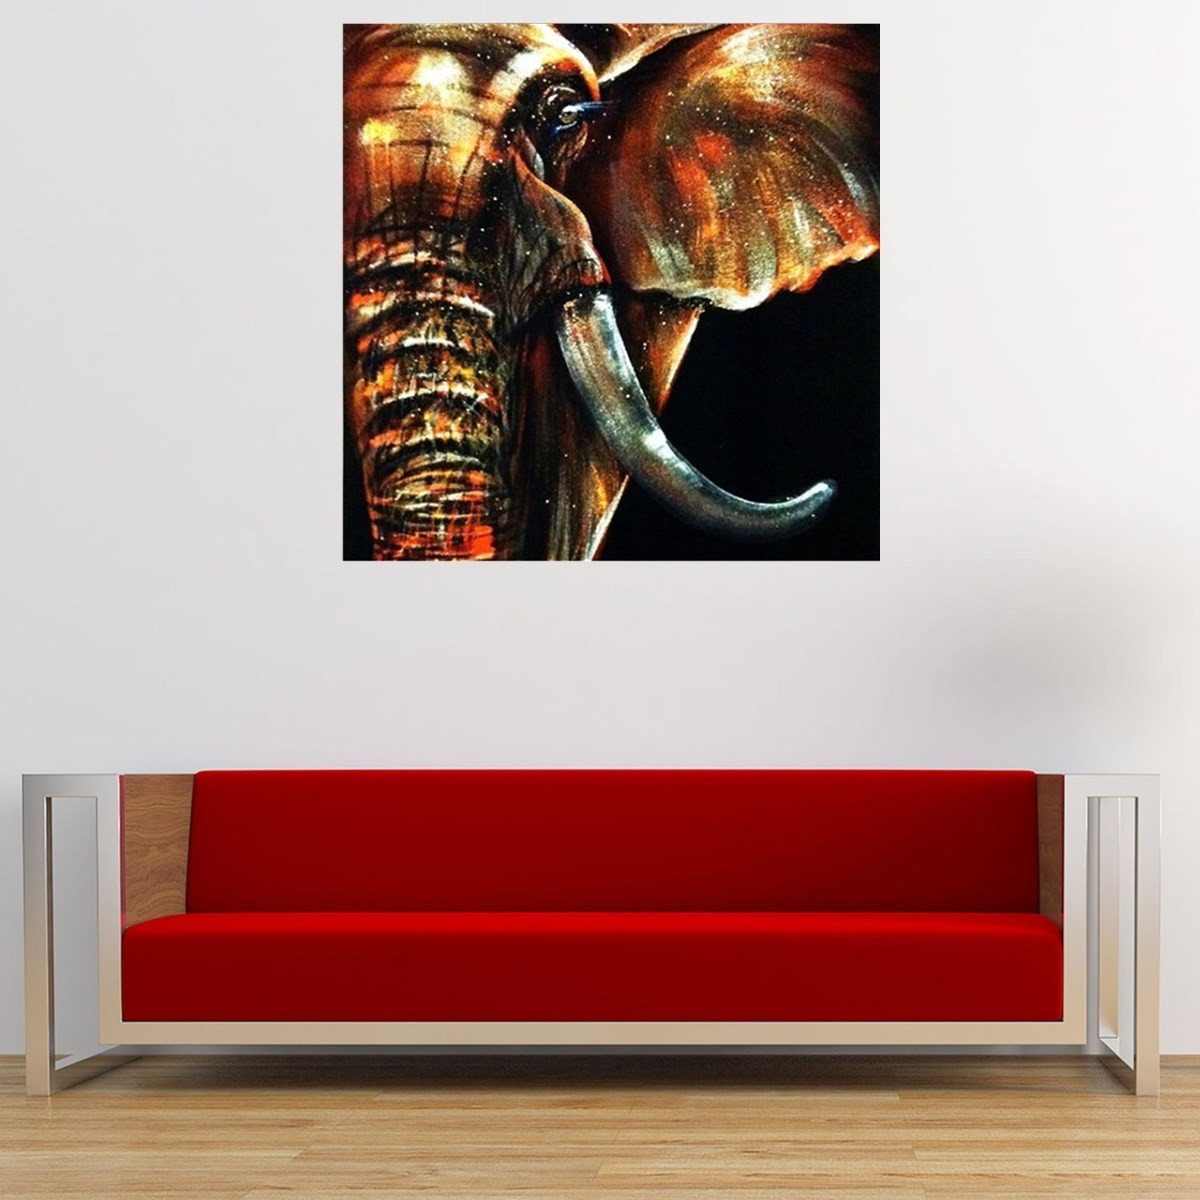 50X50Cm Modern Abstract Huge Elephant Wall Art Decor Oil Painting Inside Fashionable Abstract Elephant Wall Art (Gallery 14 of 15)